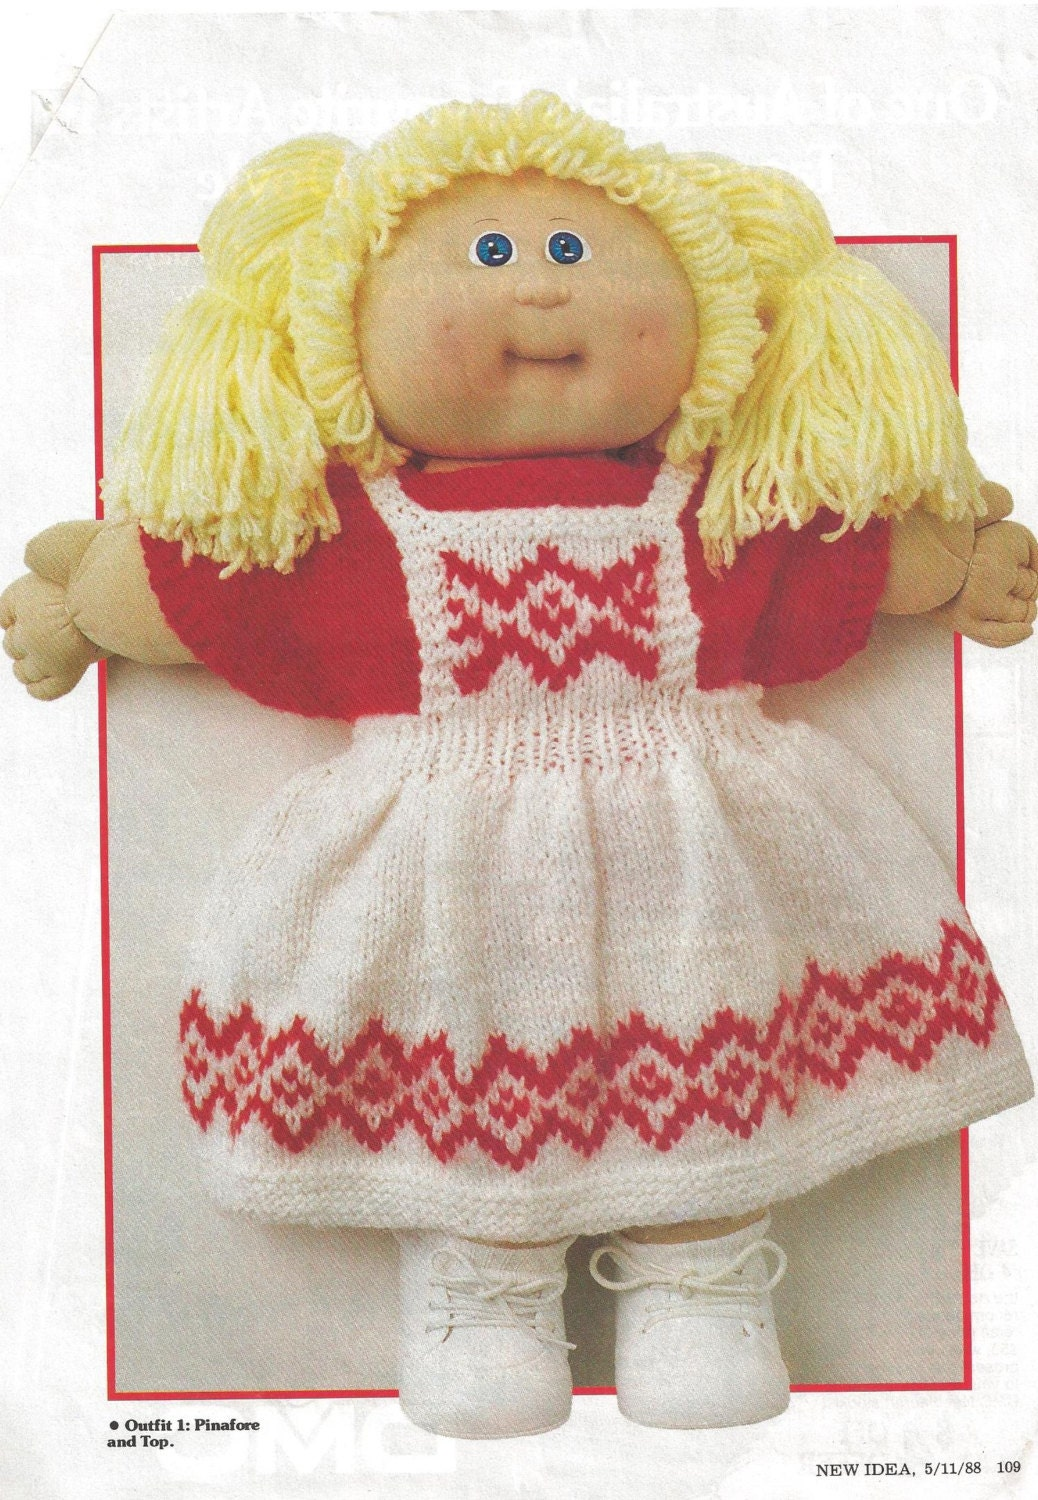 Knitting Patterns Cabbage Patch Dolls Free : Knitting Pattern Vintage Cabbage Patch Doll Four Outfits 1988